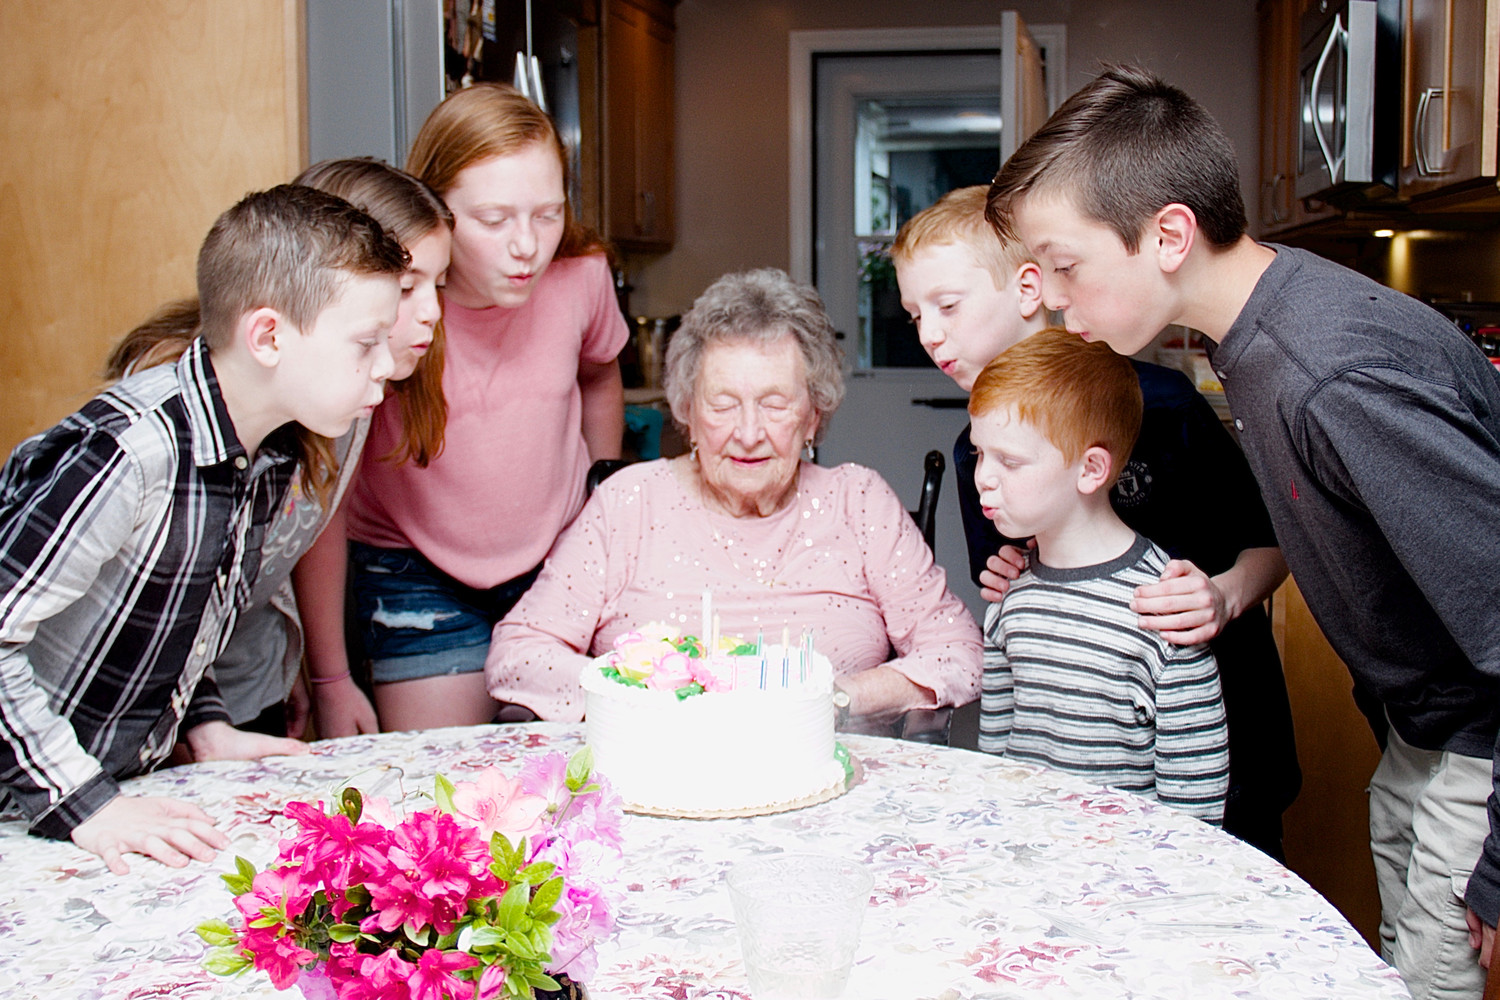 Hazel Reukauf celebrated her 100th birthday a week early surrounded by some of her great grandchildren in her Glen Cove home.